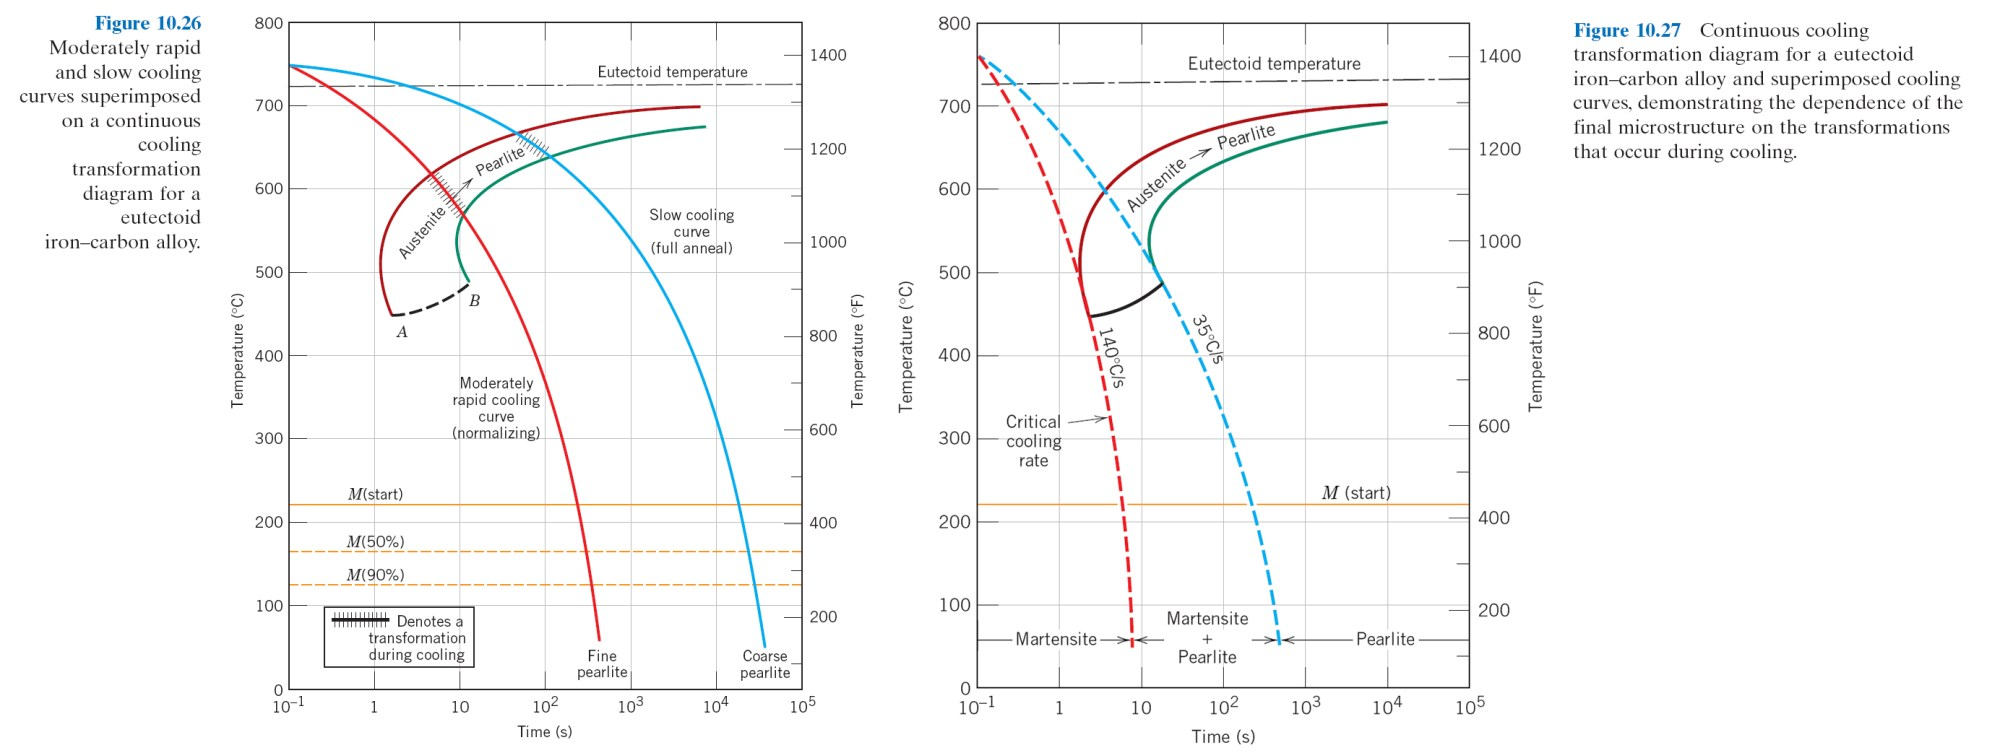 hight resolution of 16 05 isothermal t t transformation diagram for a 4340 alloy fig 10 23 17 45 isothermal vs continuous cooling curve for 0 76 wt